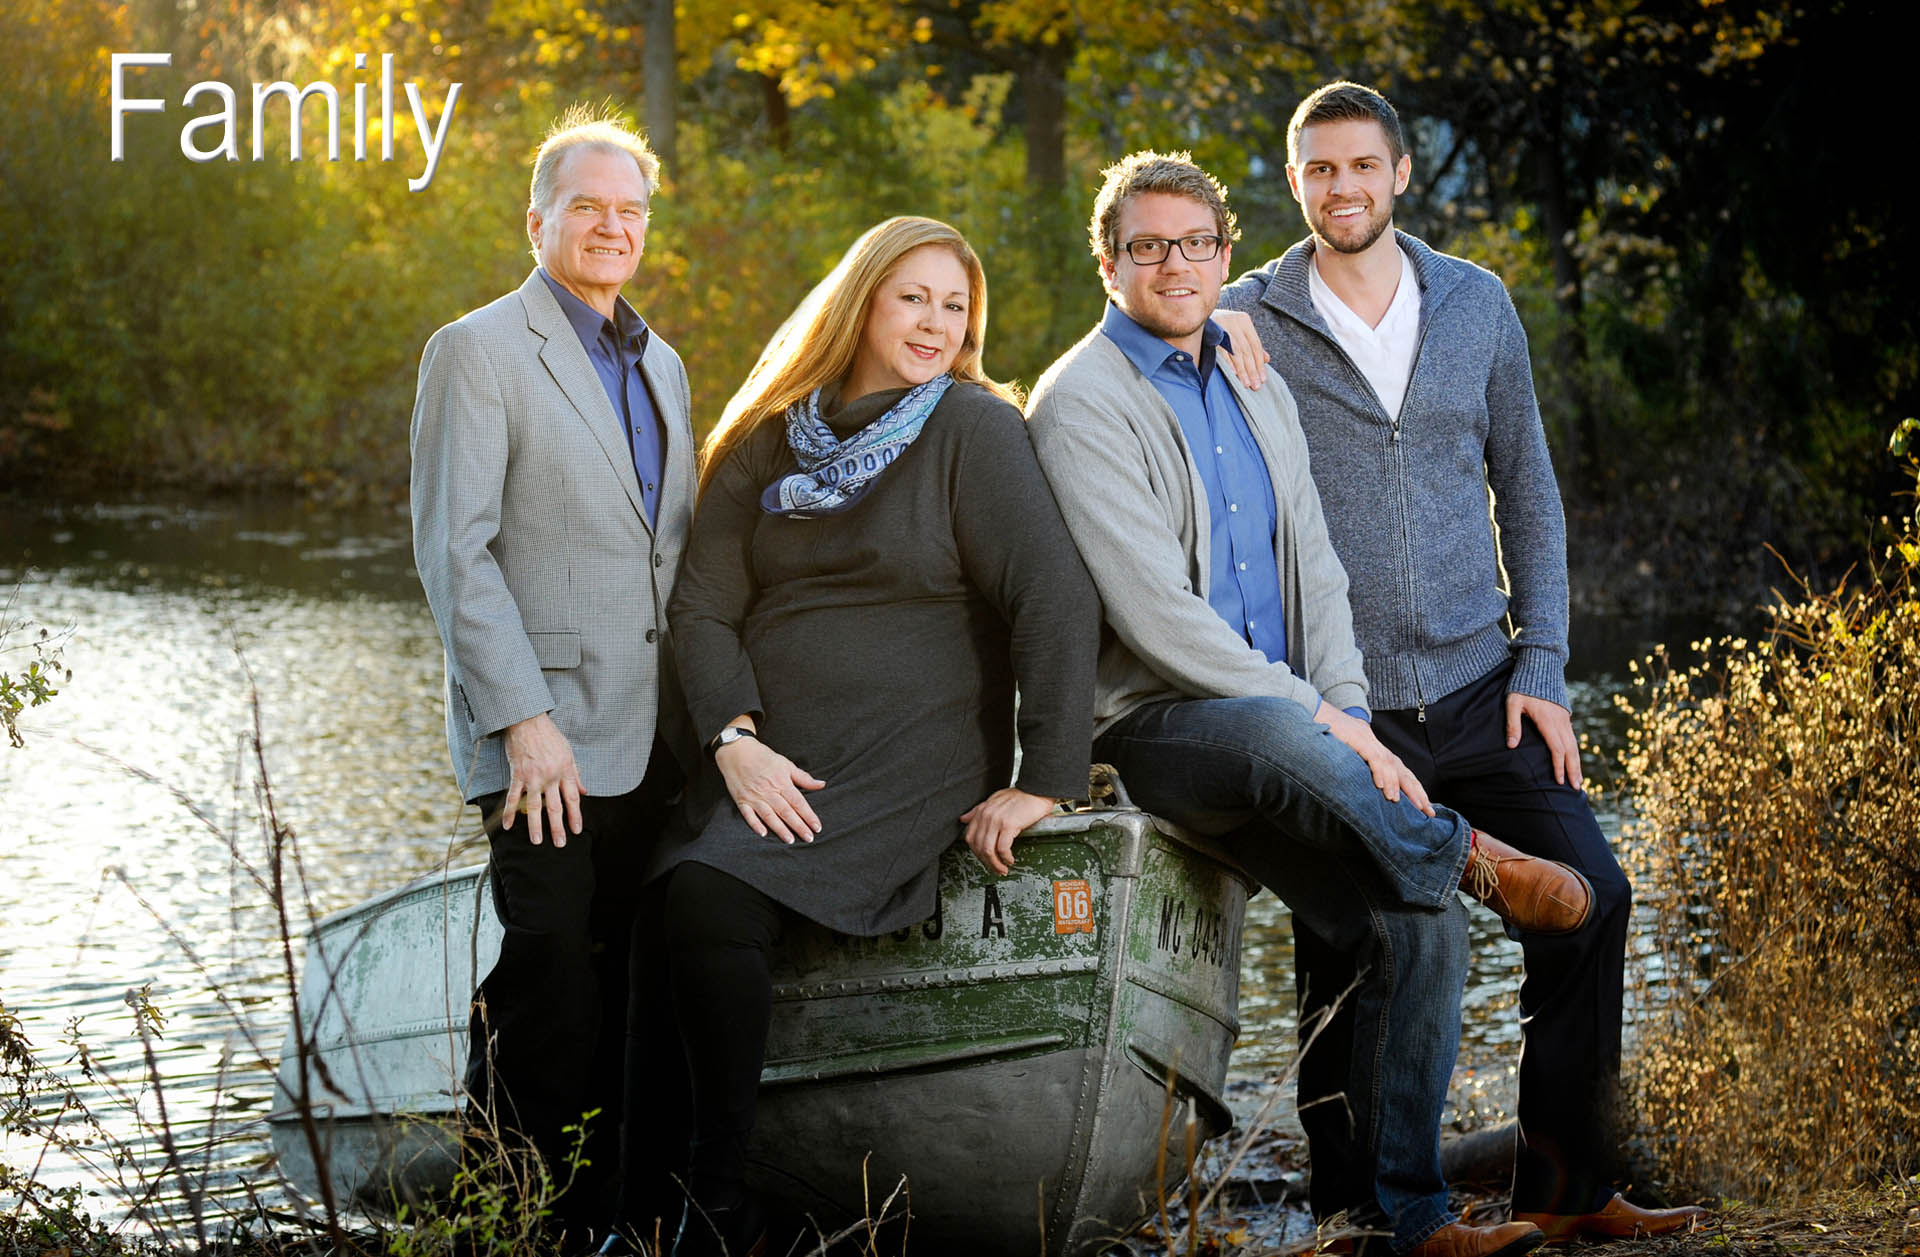 A metro Detroit family features a fun family photo with two generations created by affordable, creative family photographer who takes creative family photos in the Metro Detroit area.